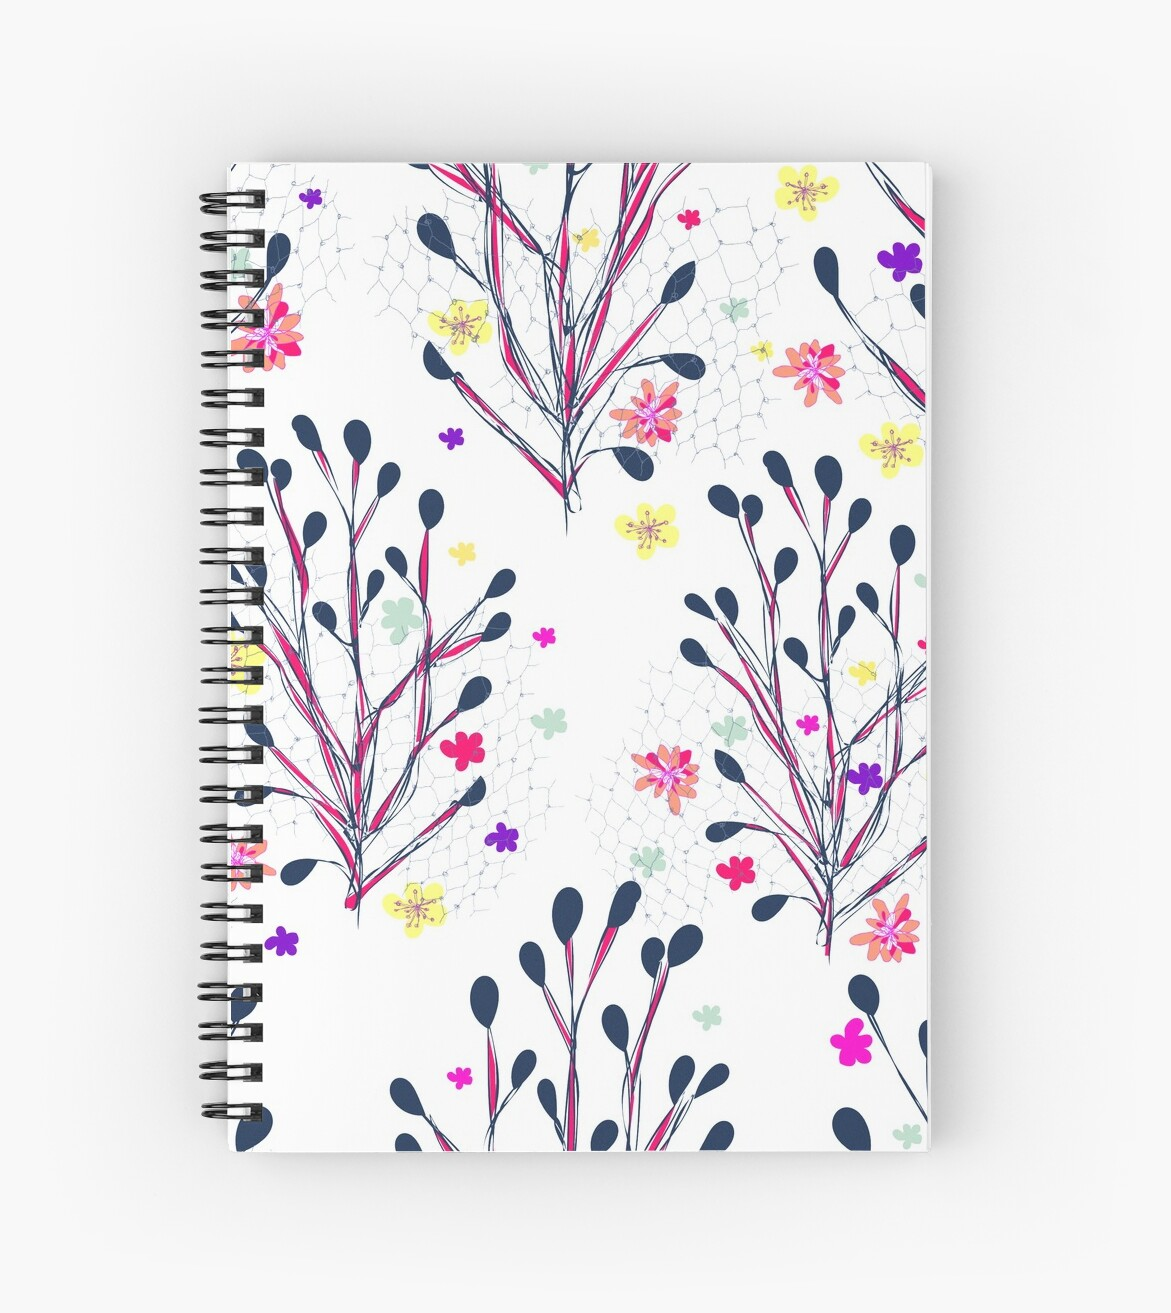 Art Journal design by Mimi Pinto available at Redbubble